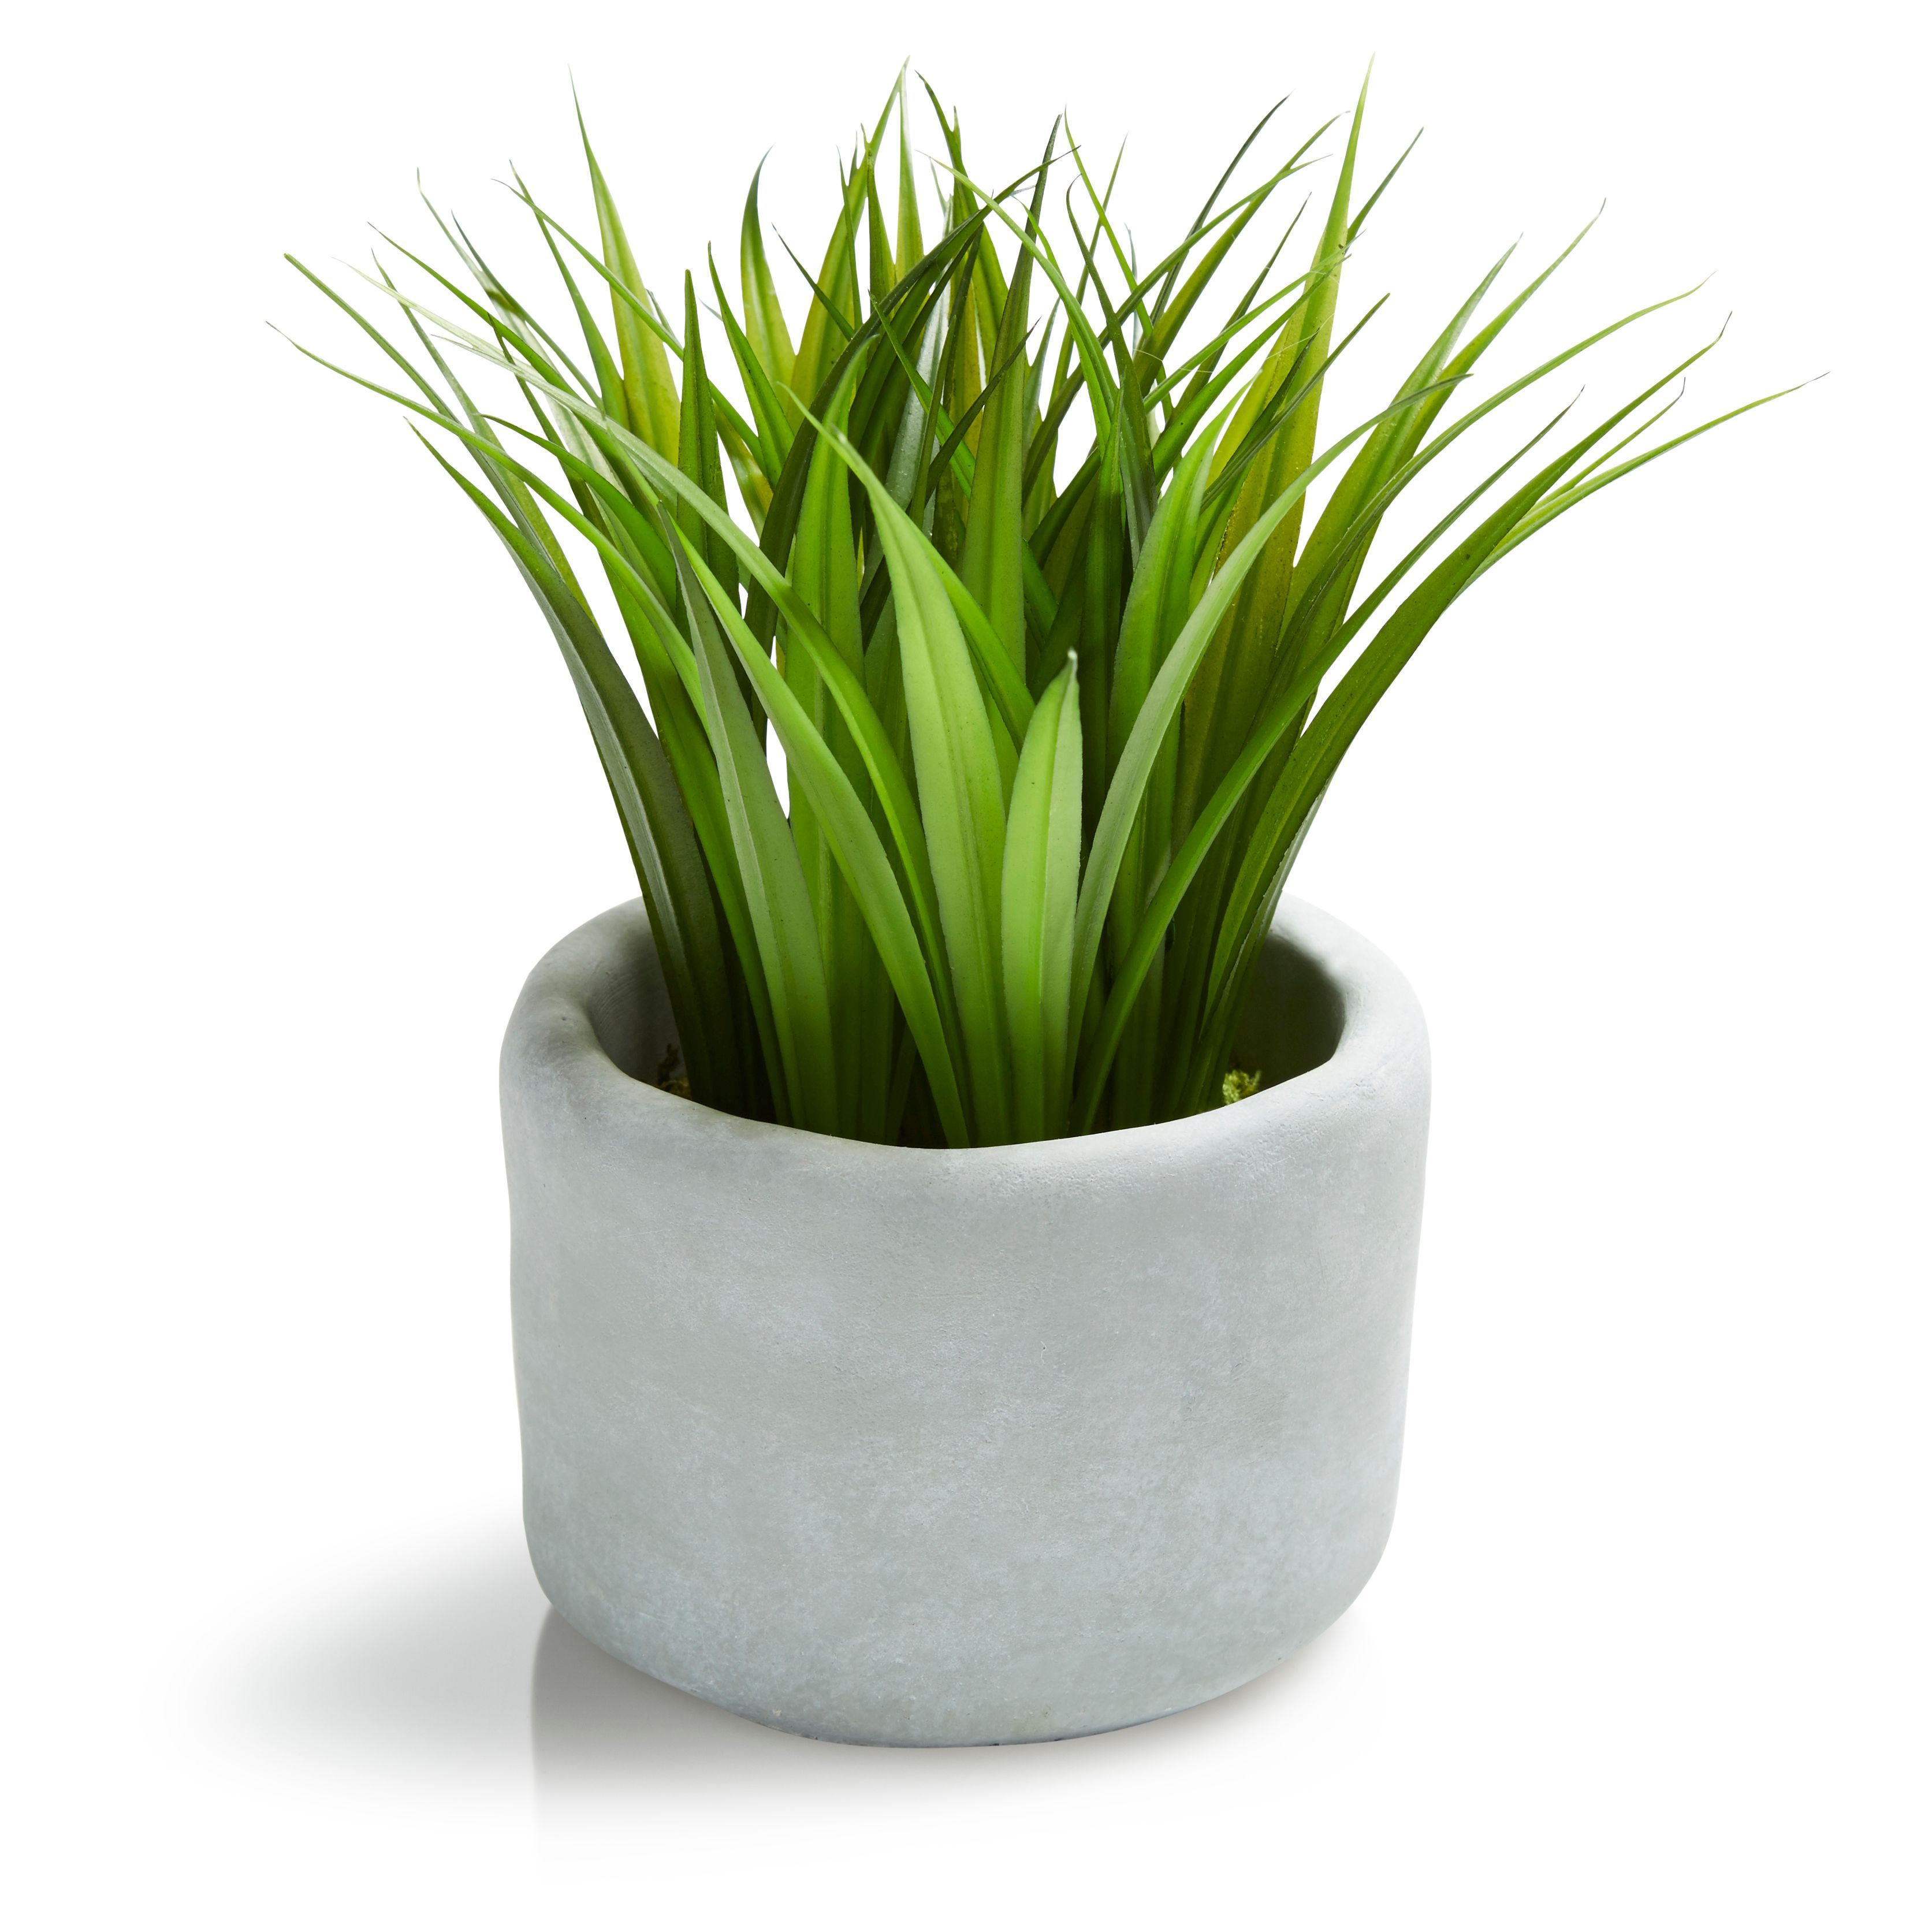 Grass decorative plant small departments diy at b q for Small decorative grasses